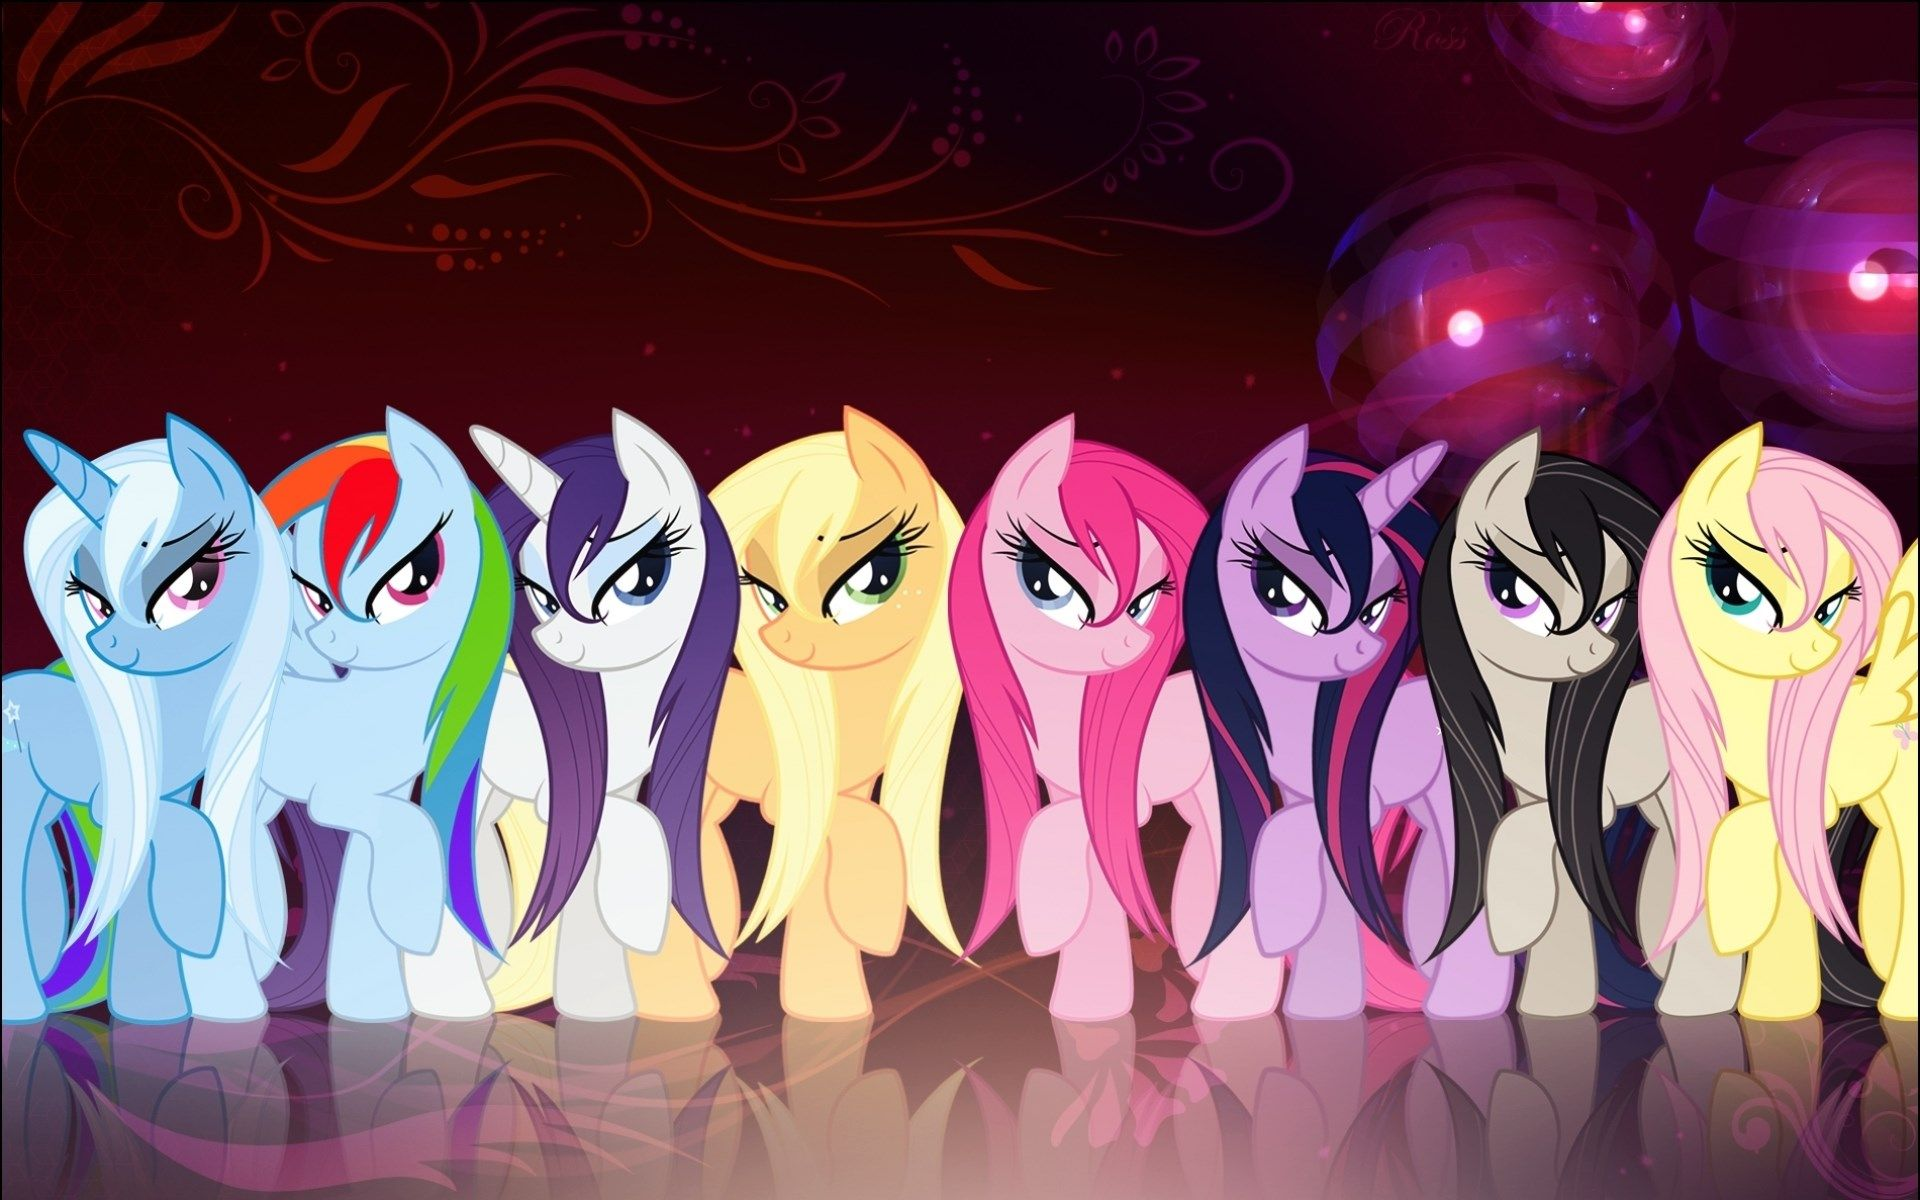 1920x1200 My Little Pony Wallpaper Android Imagens Para Perfil